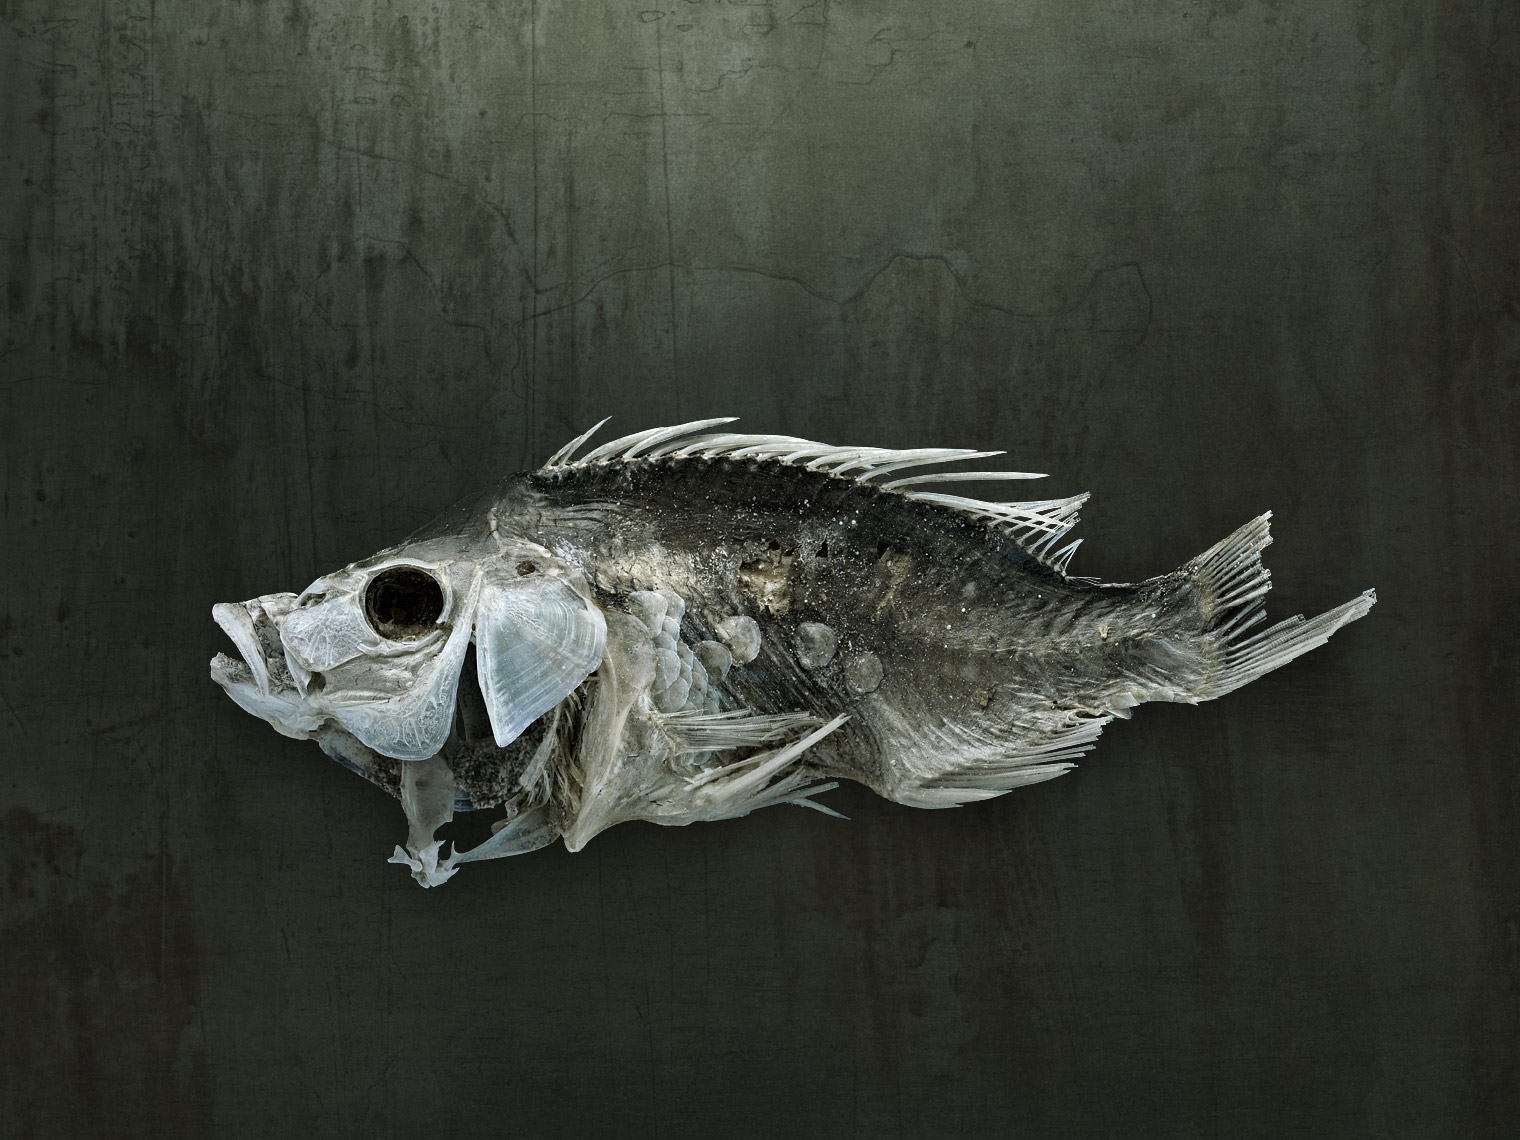 Salton Sea fish study by fine art wildlife photographer Brad Wilson